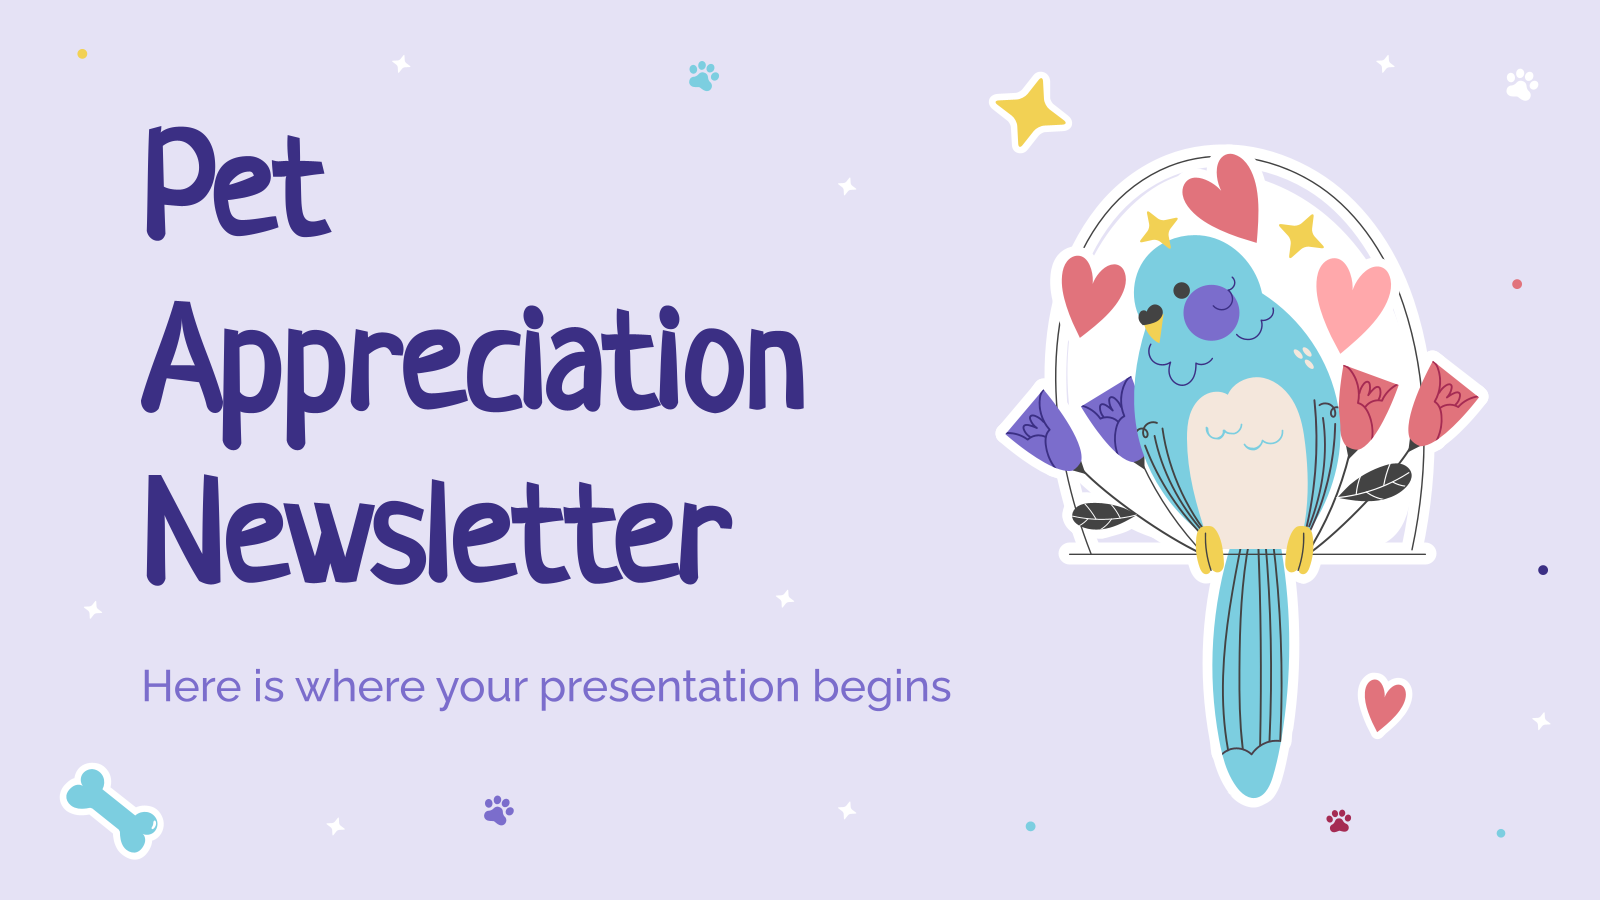 Pet Appreciation Newsletter presentation template